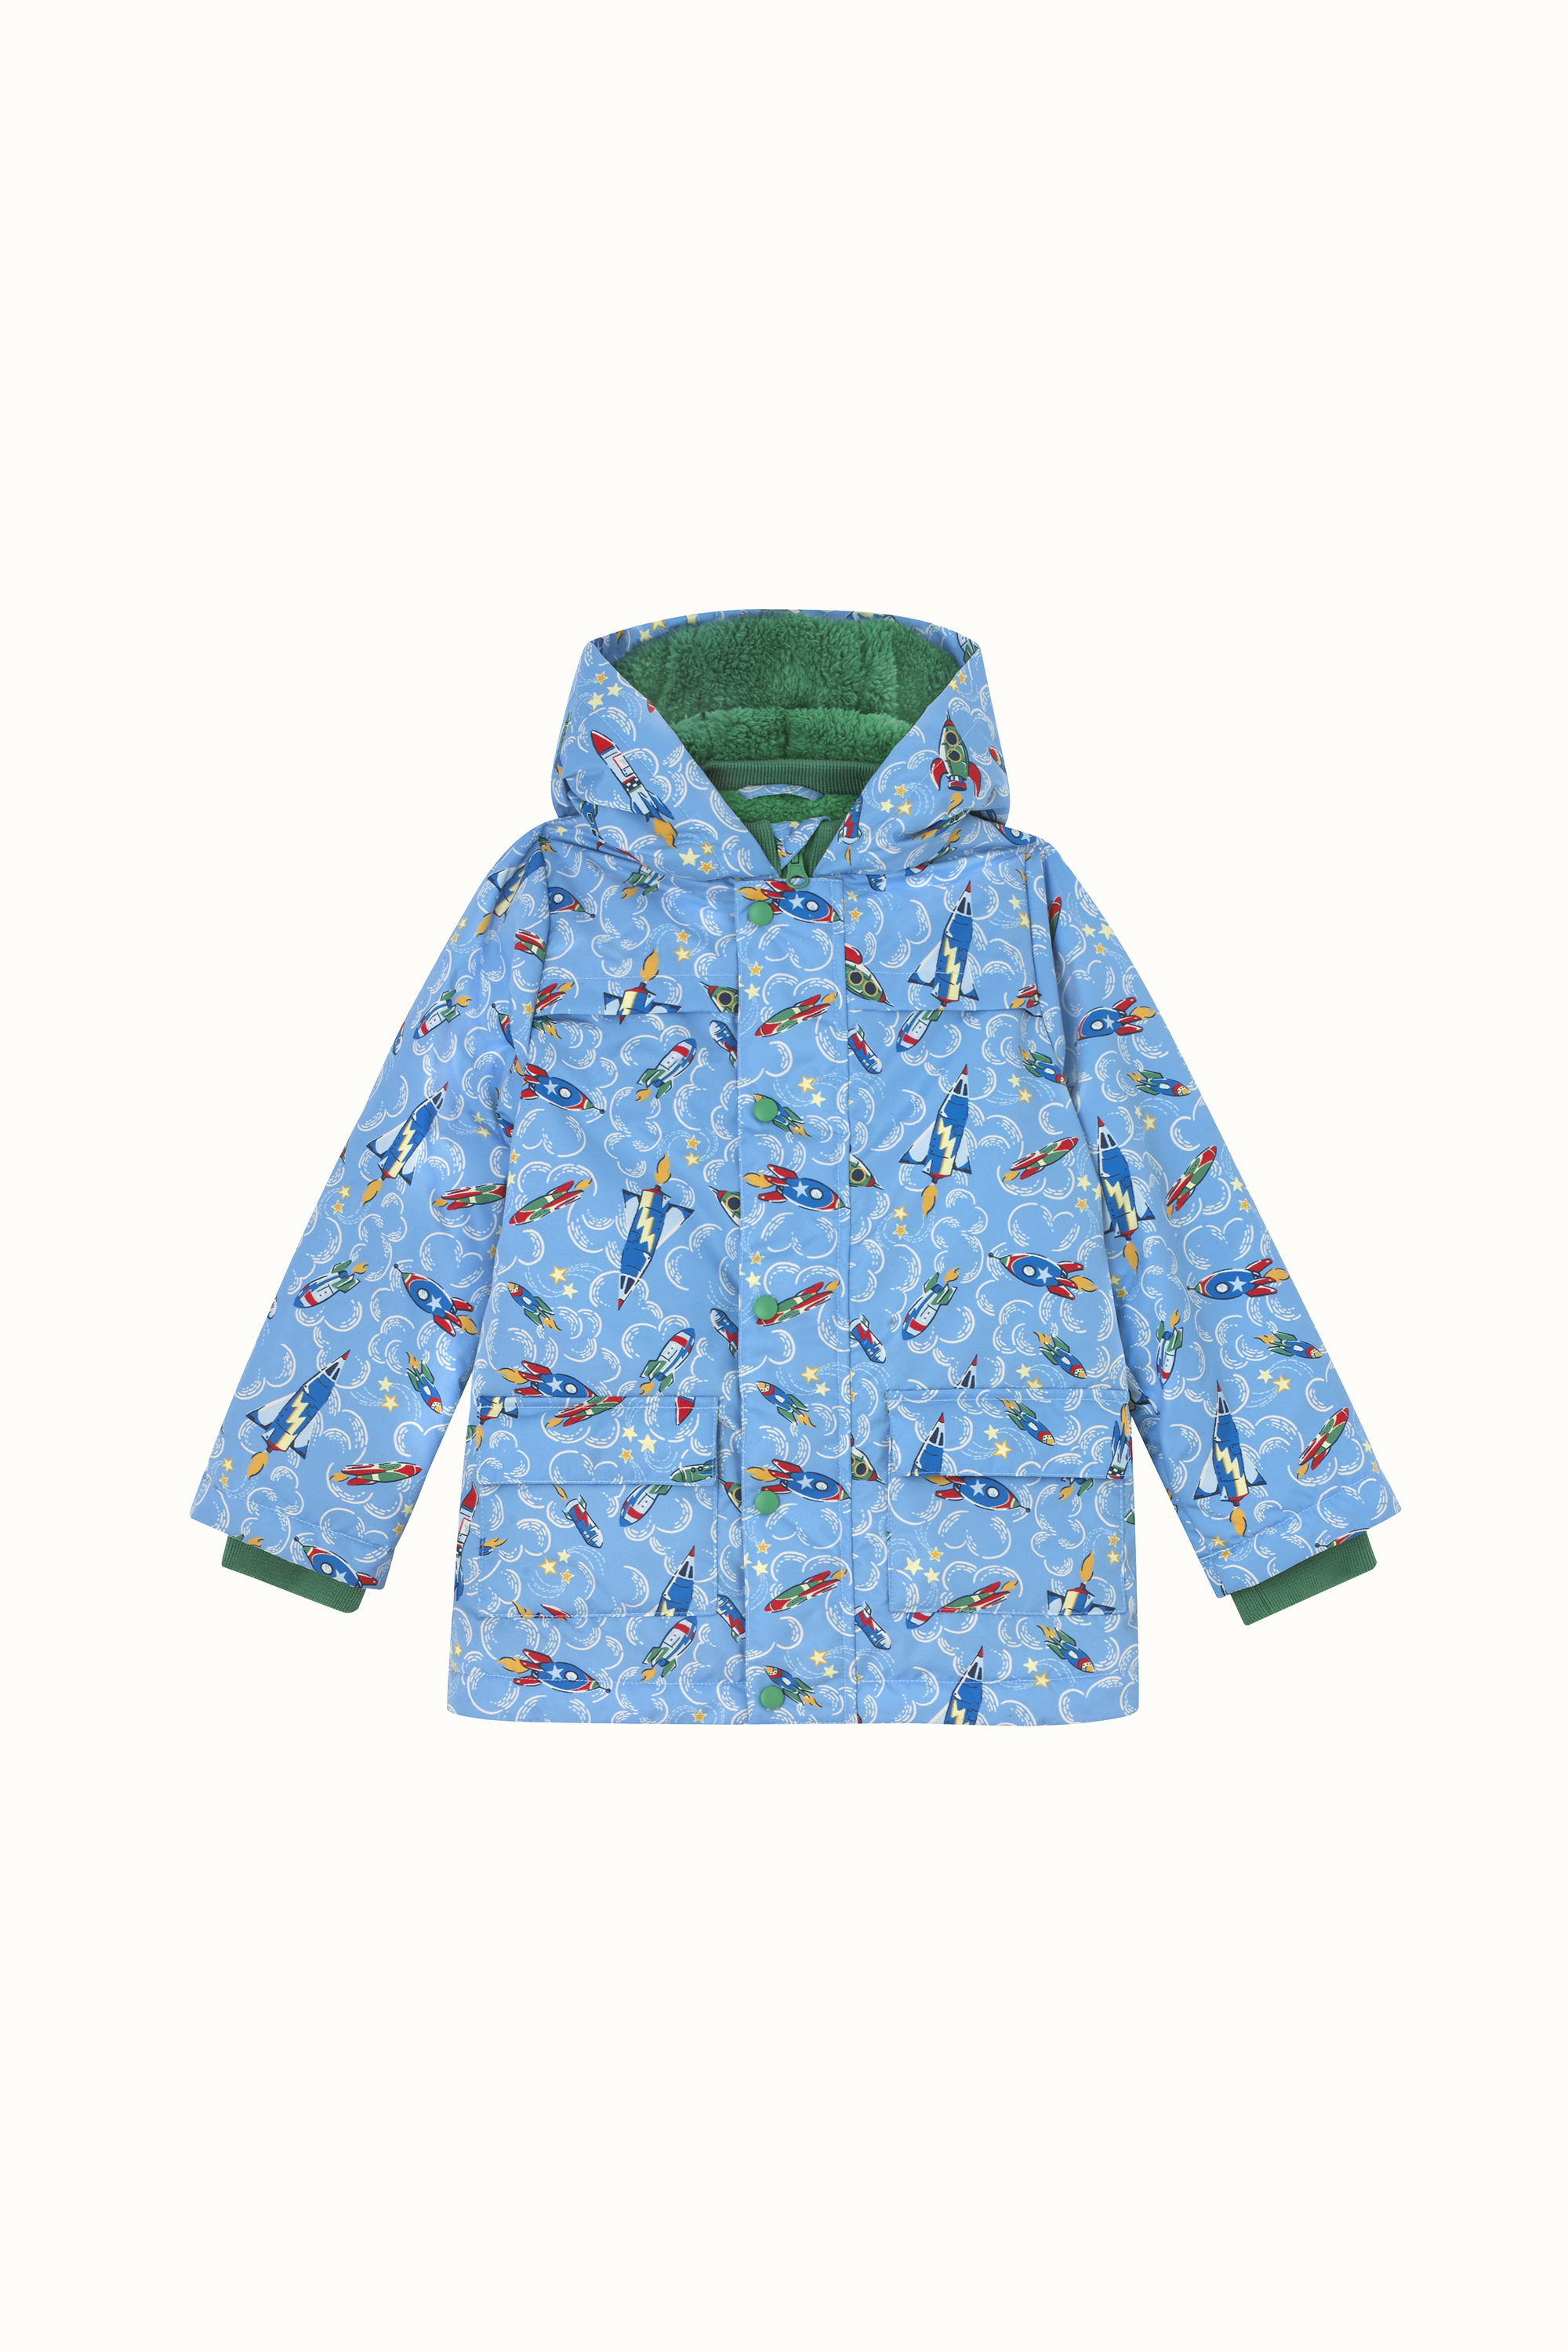 Cath Kidston Rockets Cosy Padded Coat in Blue, 7-8 yr